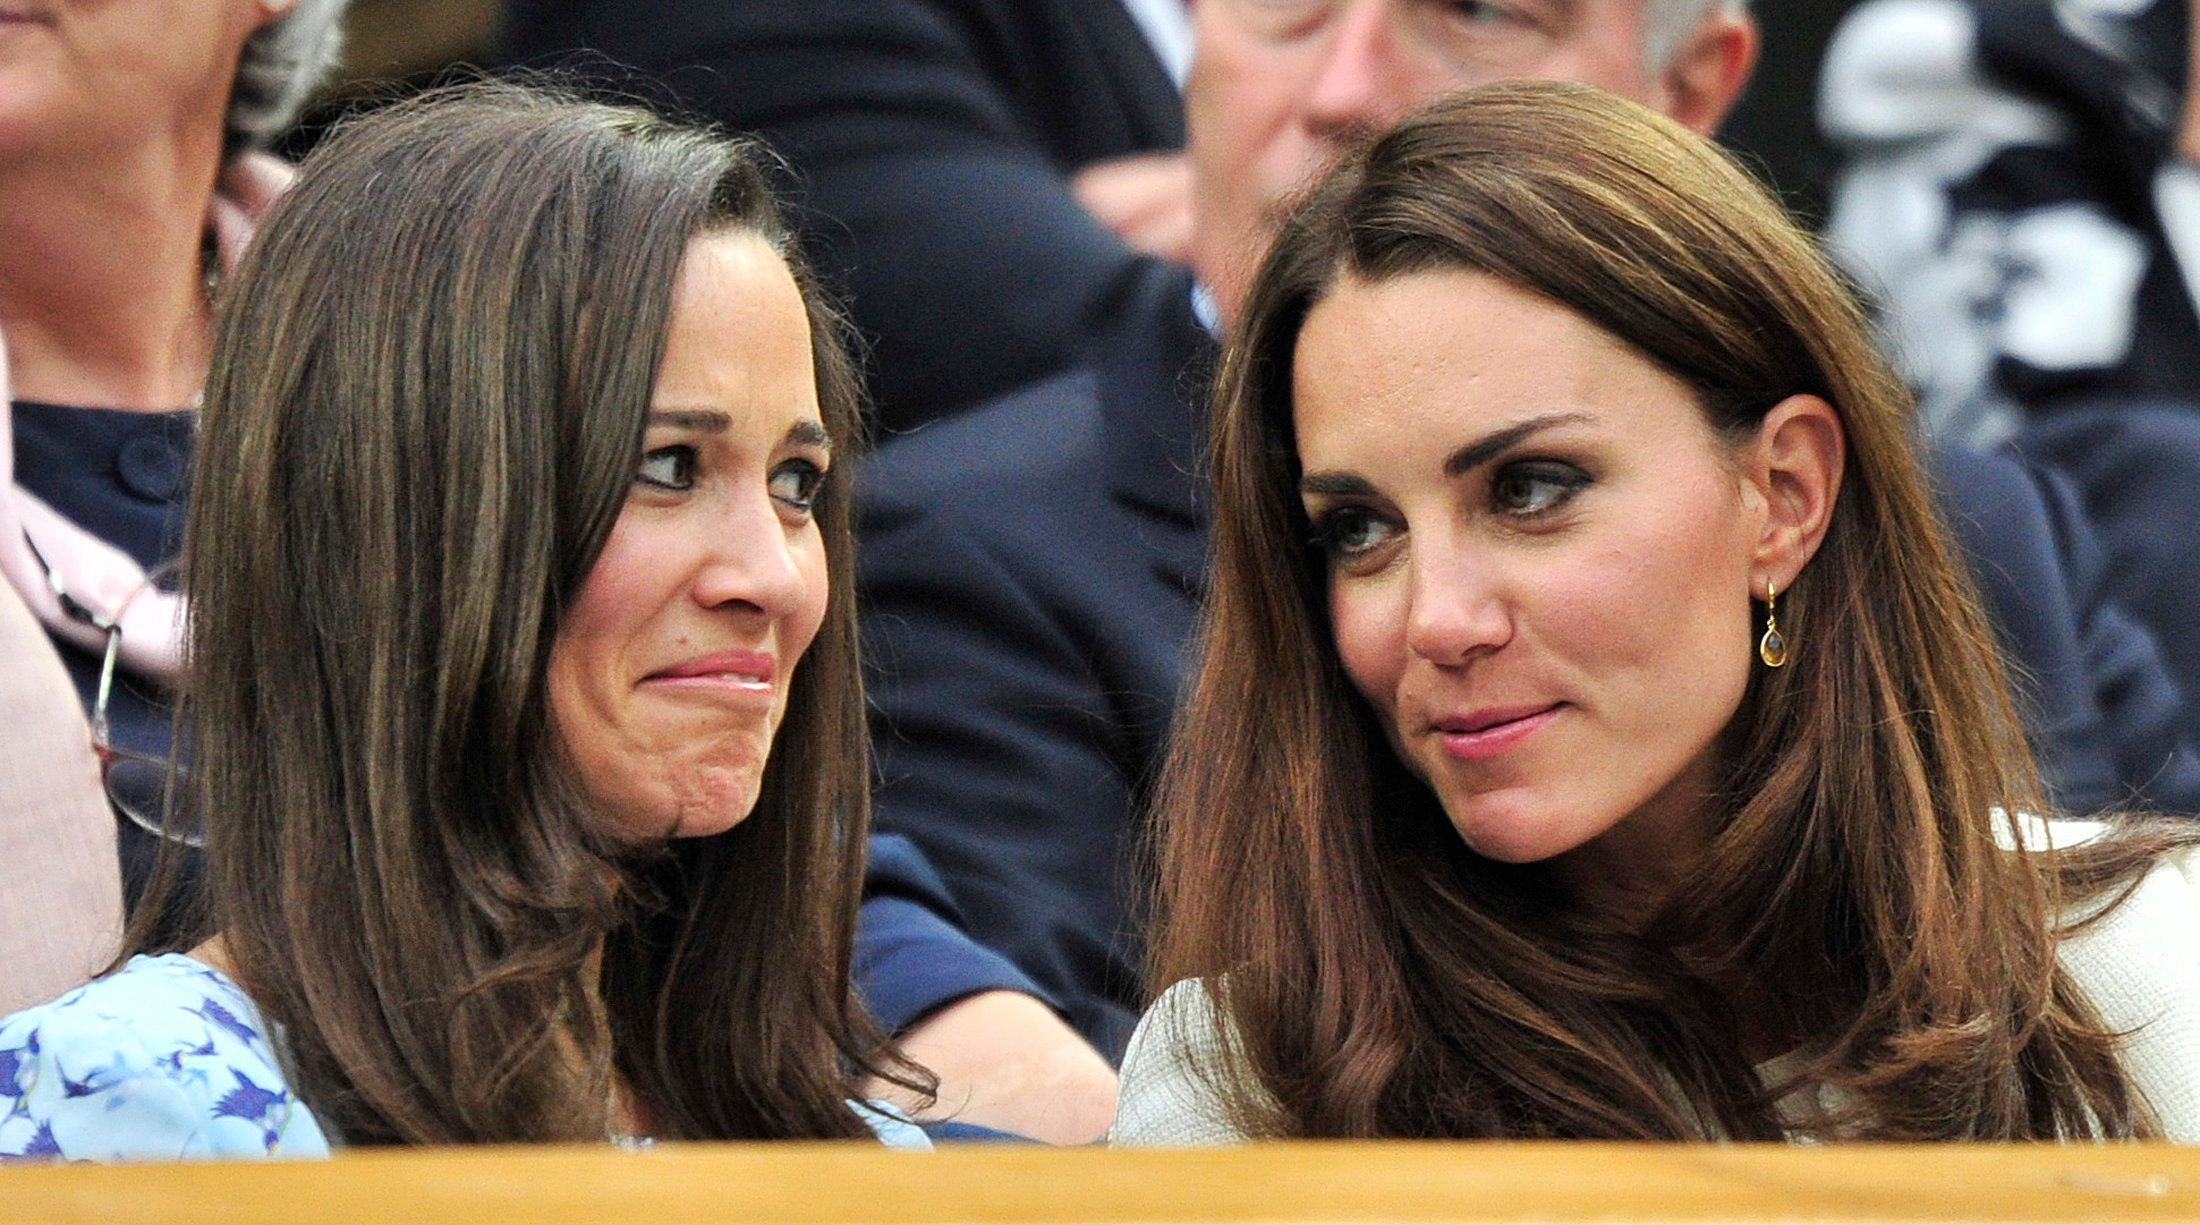 Britain's Catherine, Duchess of Cambridge (R) sits with her sister Pippa Middleton on Centre Court for the men's singles final tennis match between Roger Federer of Switzerland and Andy Murray of Britain at the Wimbledon Tennis Championships in London July 8, 2012.   REUTERS/Toby Melville (BRITAIN  - Tags: ENTERTAINMENT SOCIETY SPORT TENNIS)